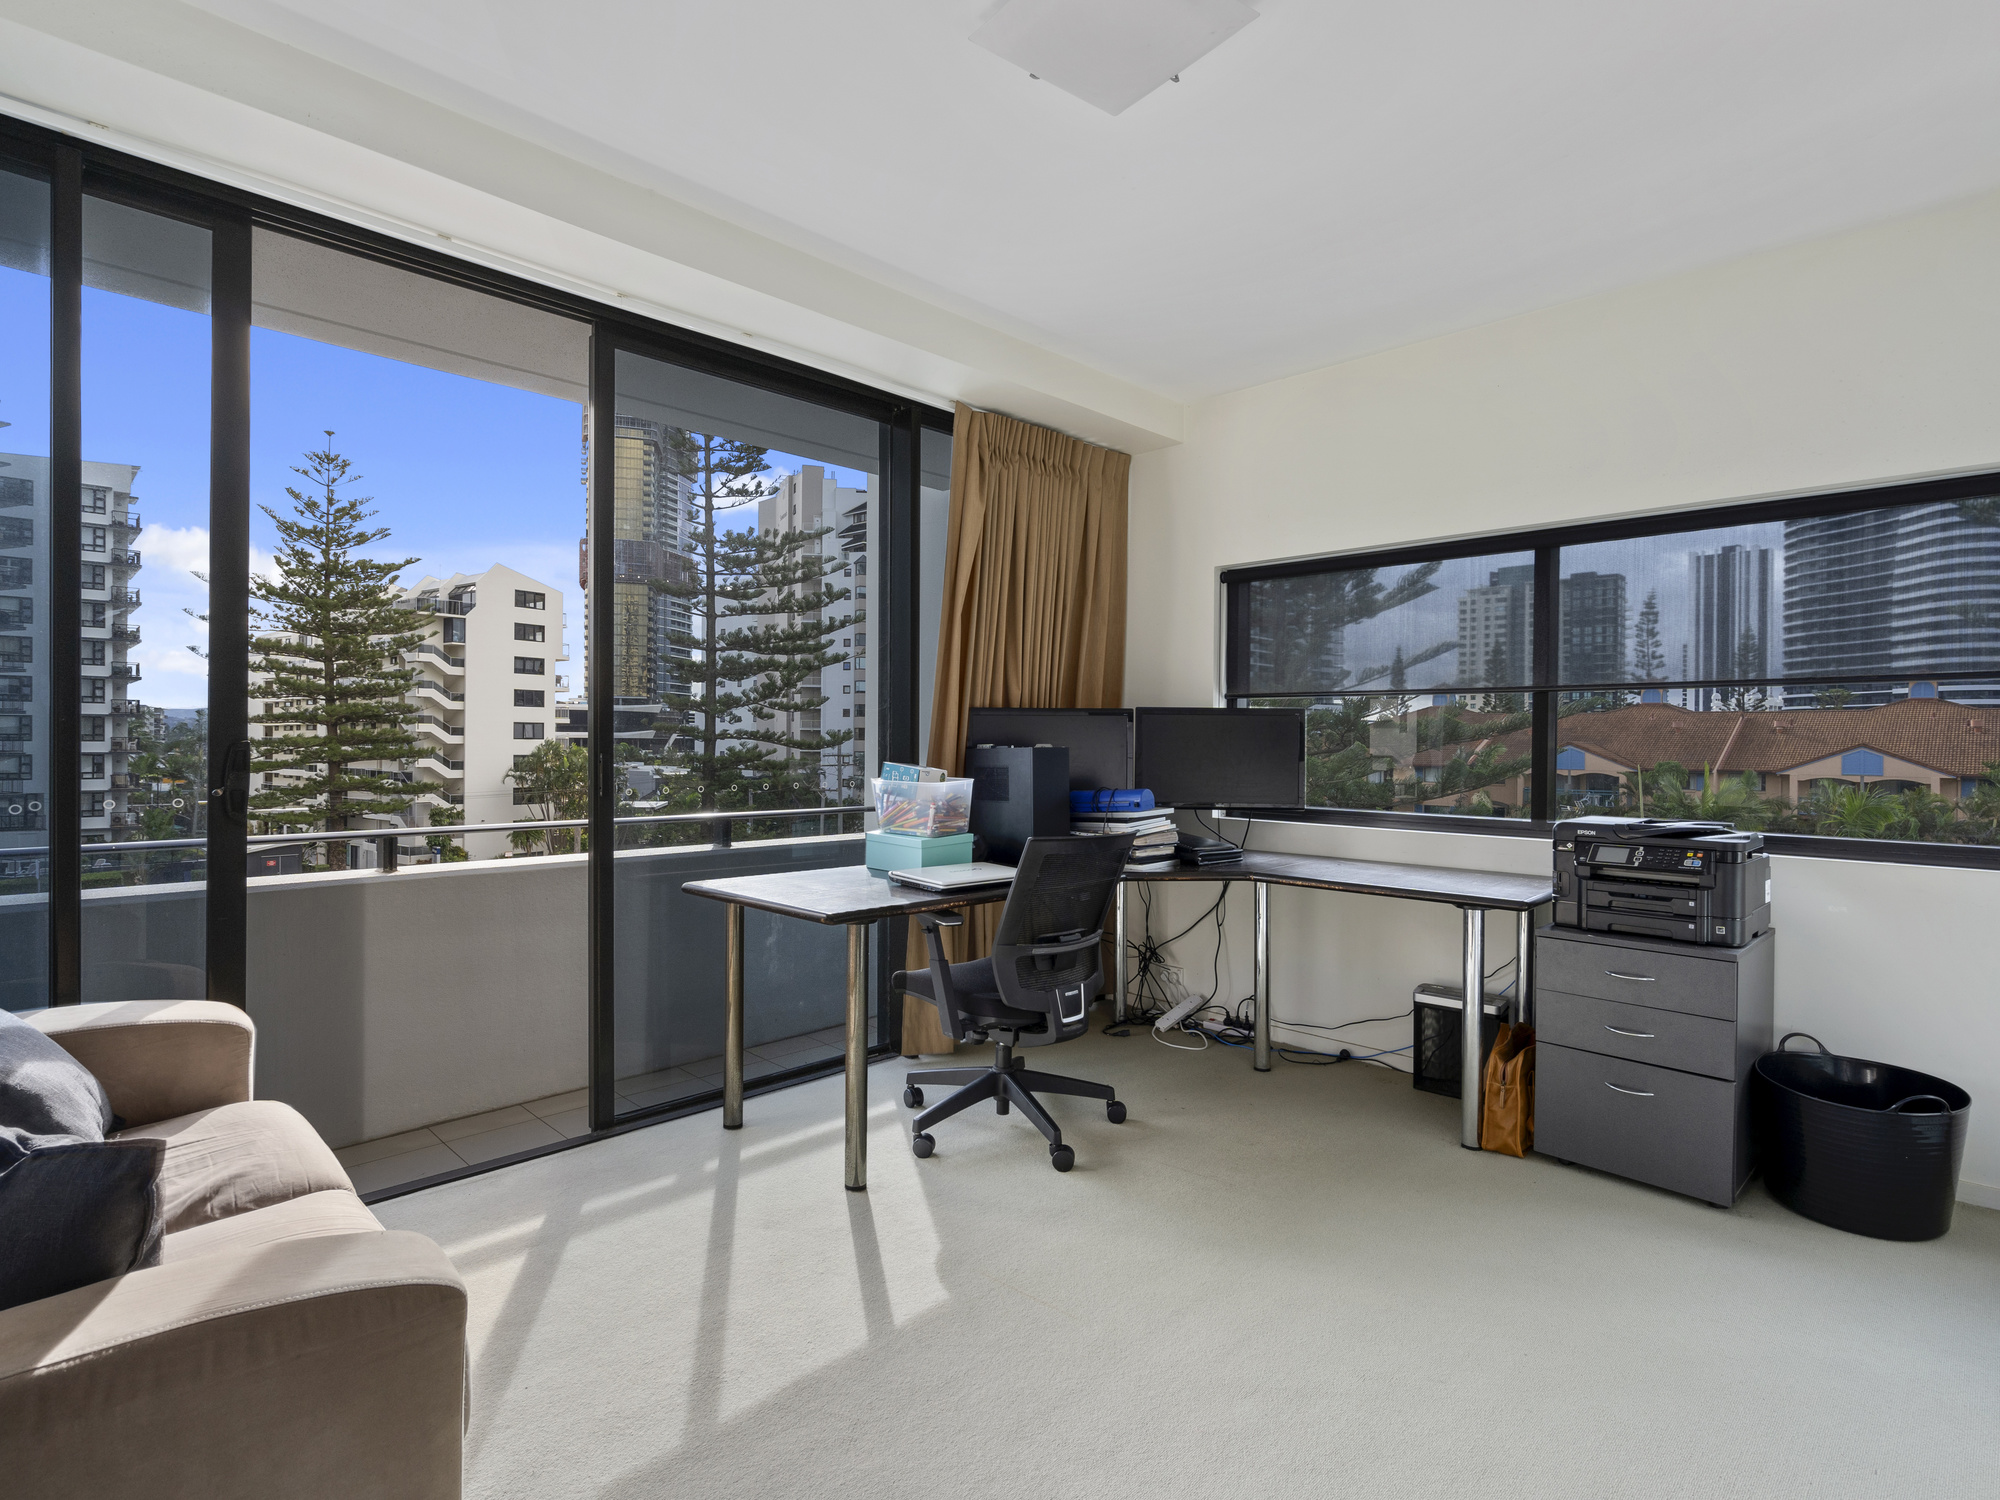 Real Estate | Gold Coast | Chevron Realty | 008 Open2view Id685729 301 14 George Avenue